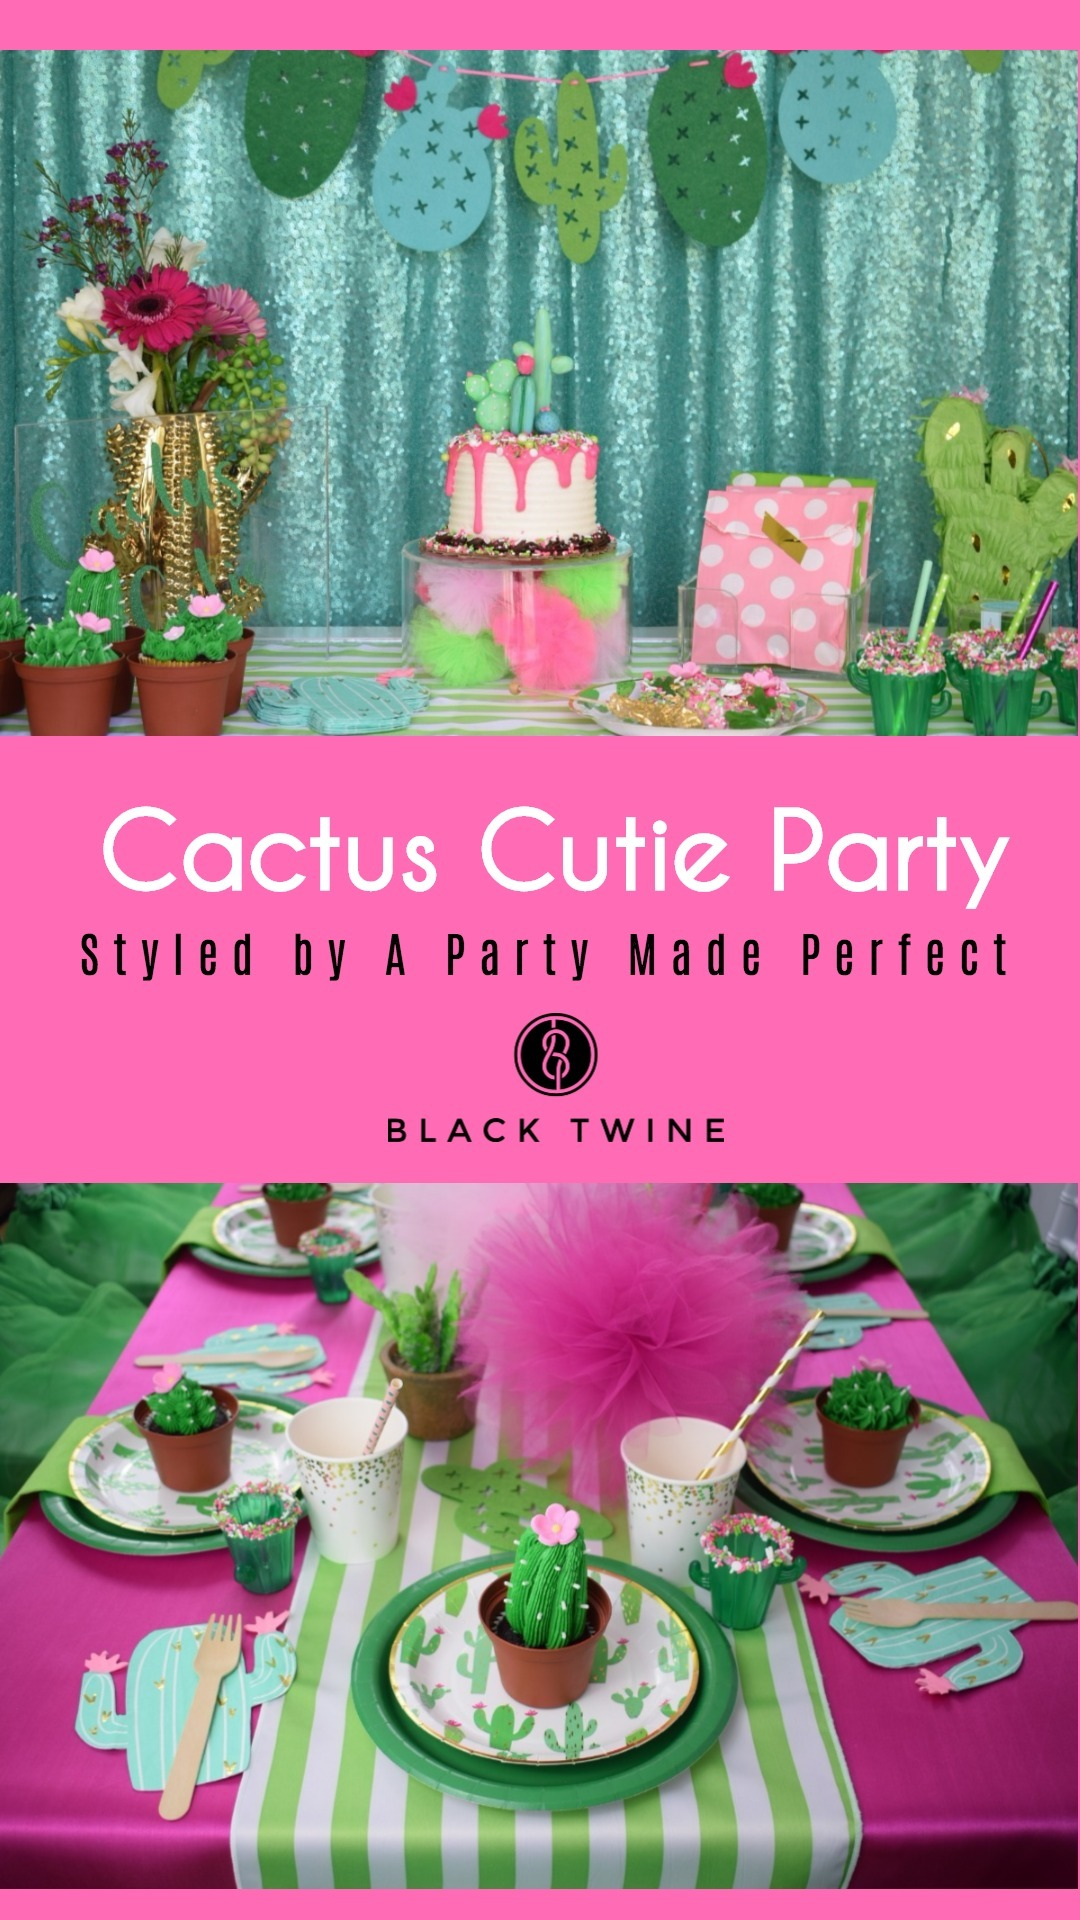 Cactus Cutie Party Styled by A Party Made Perfect   Black Twine